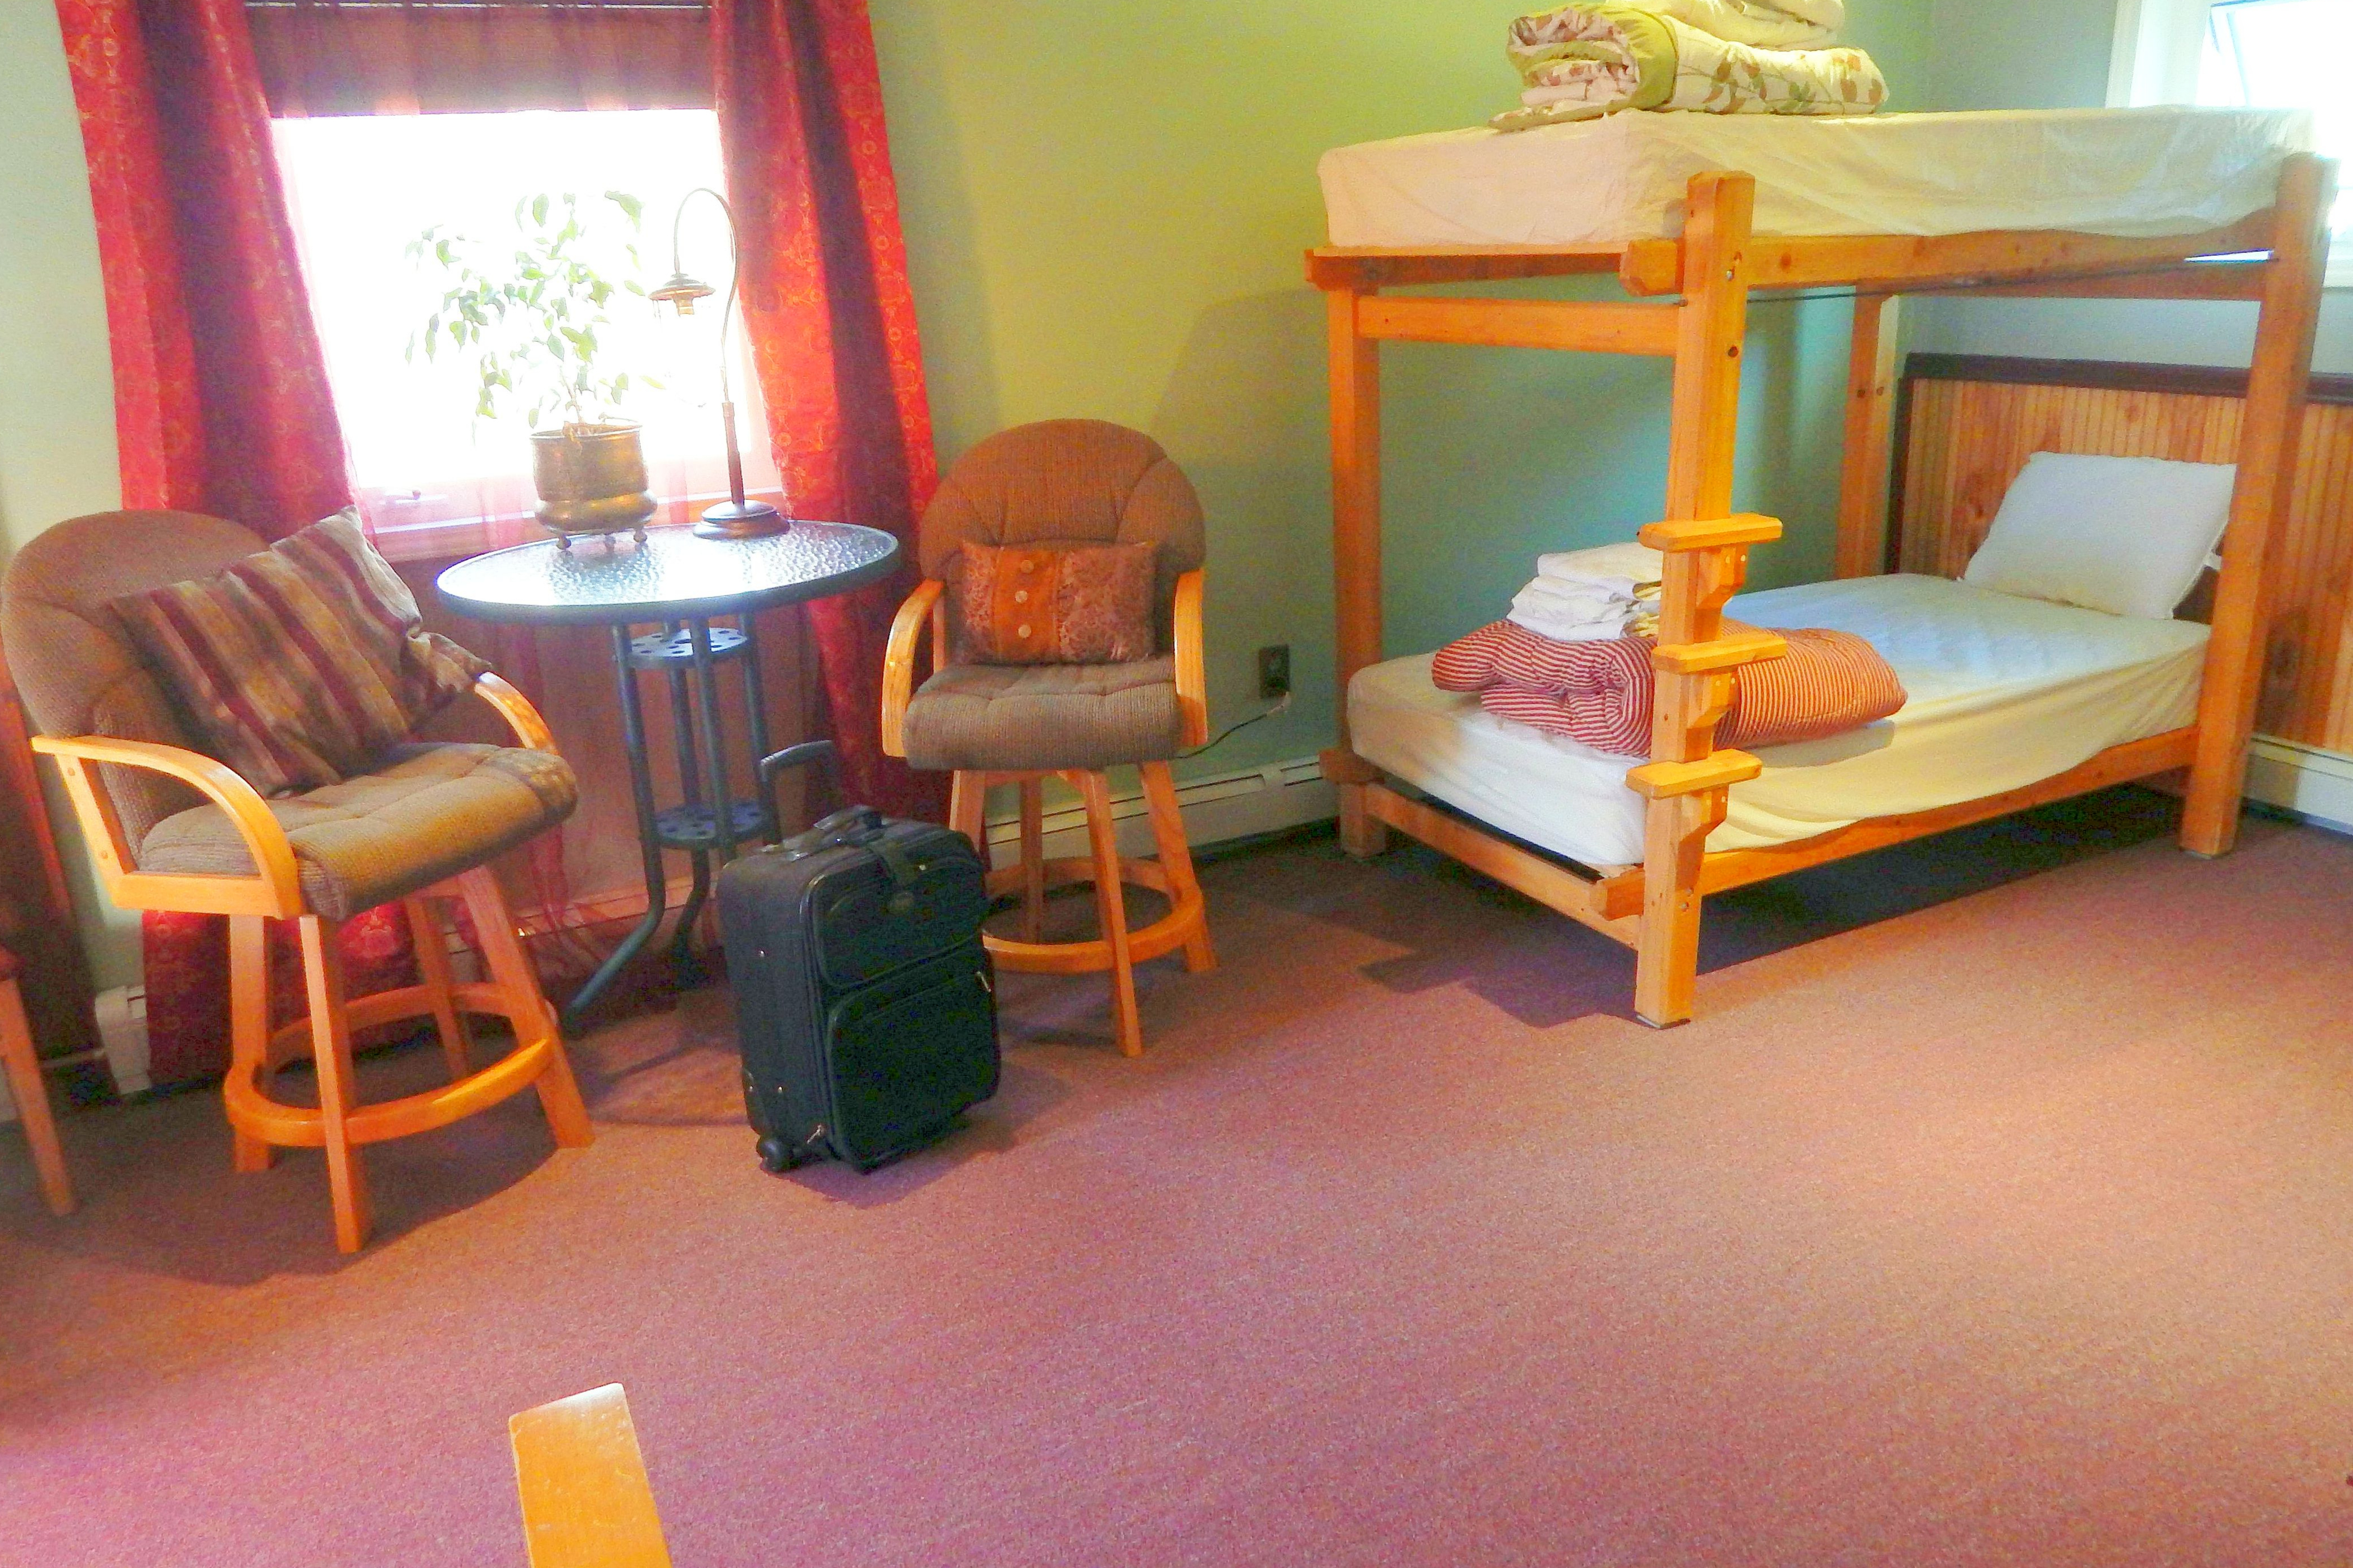 A04 Coed Main Dorm Bunk Bed Hostels For Rent In Fairbanks Alaska United States